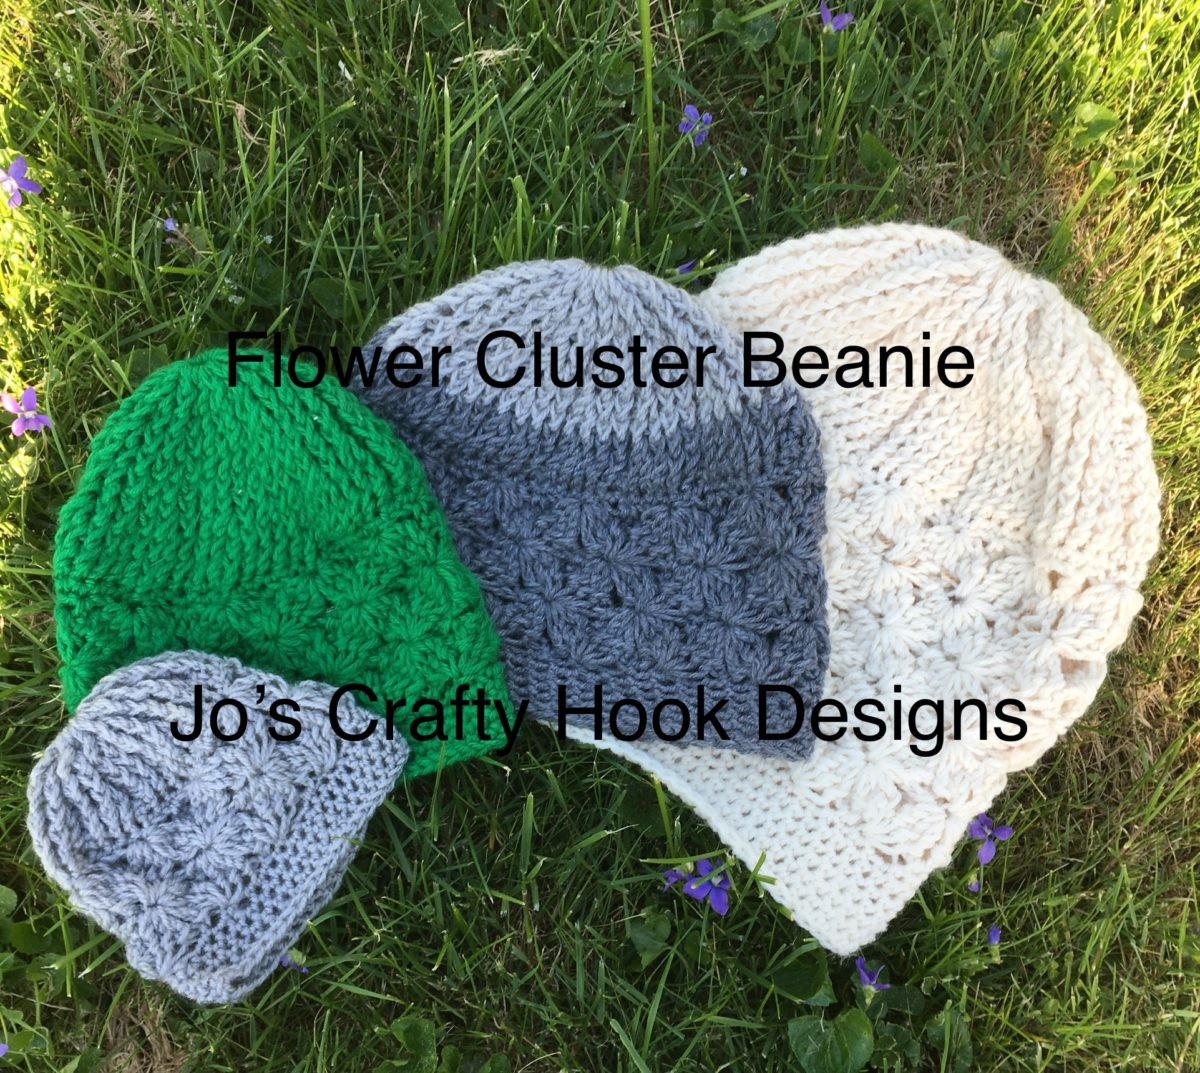 Lilac or Flower Cluster Beanie Free Crochet Pattern